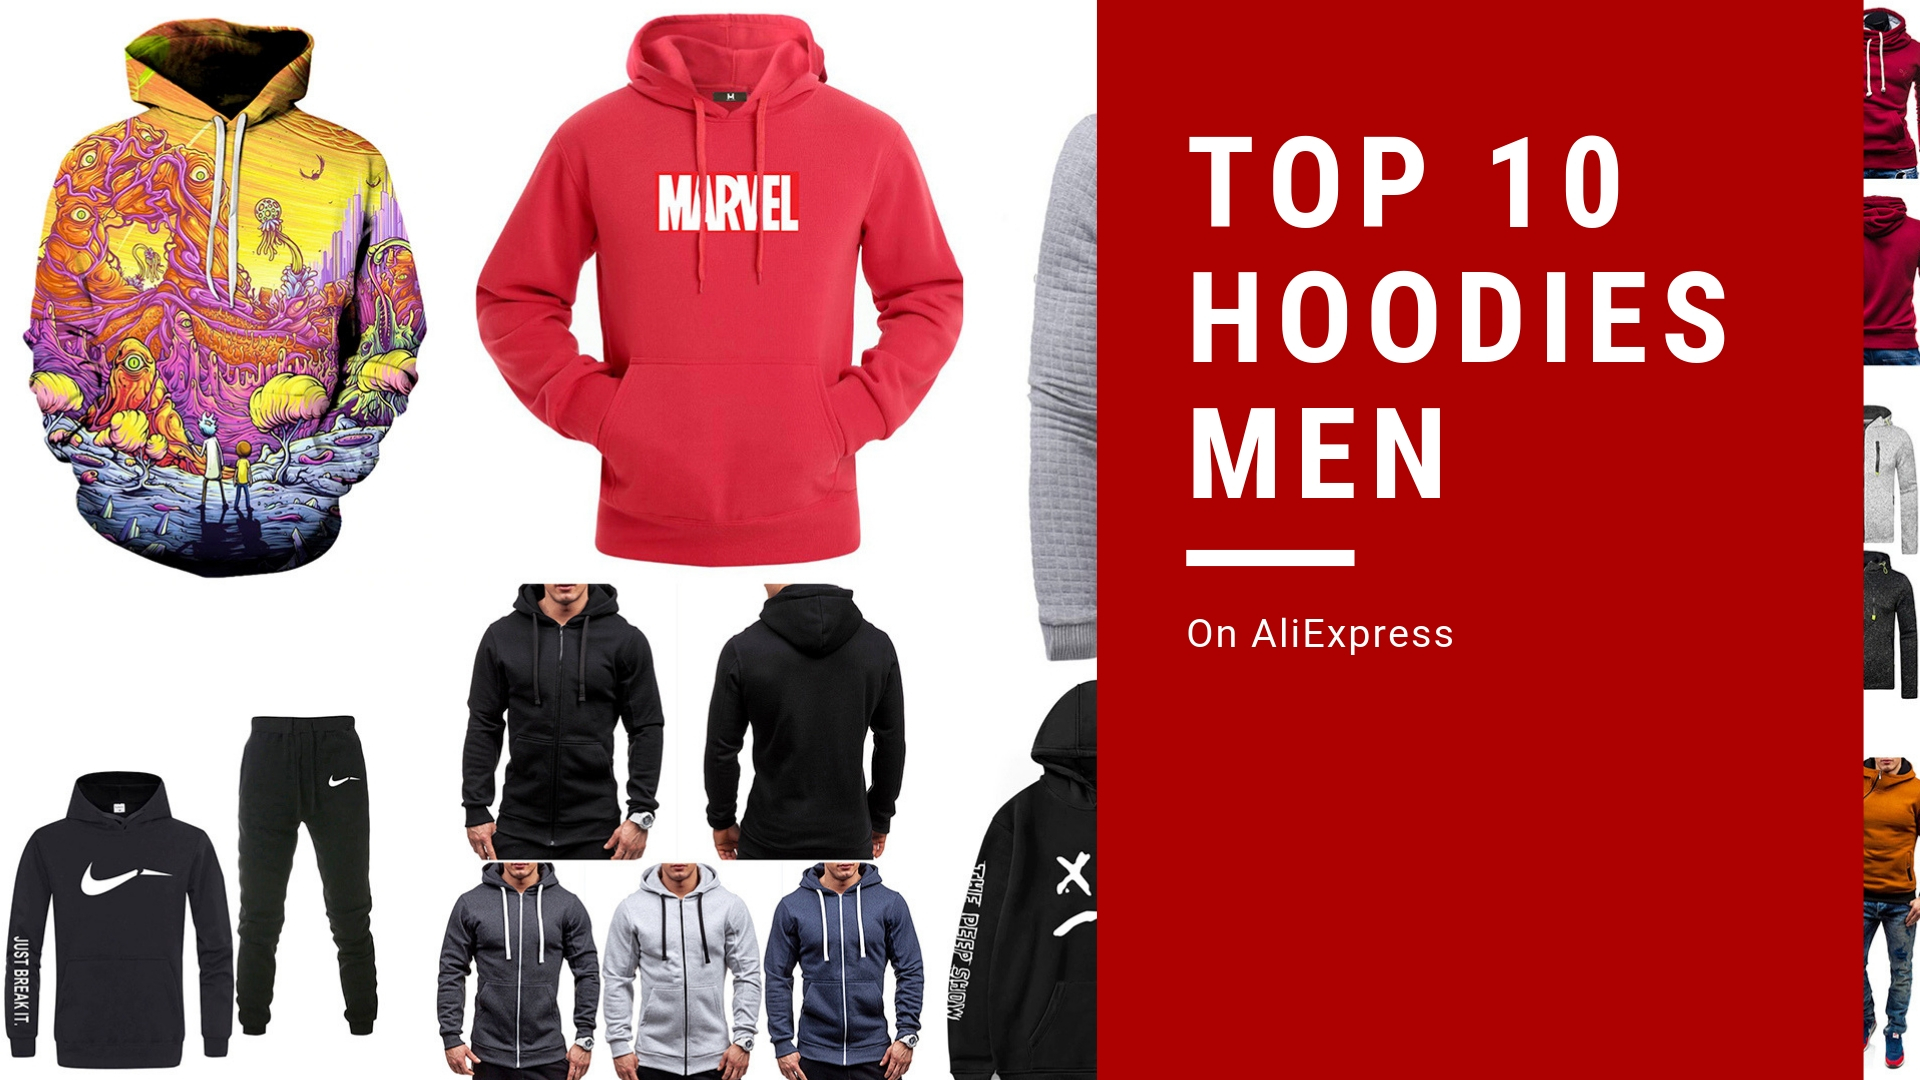 Hoodies Men Top Ten (Top 10) on AliExpress